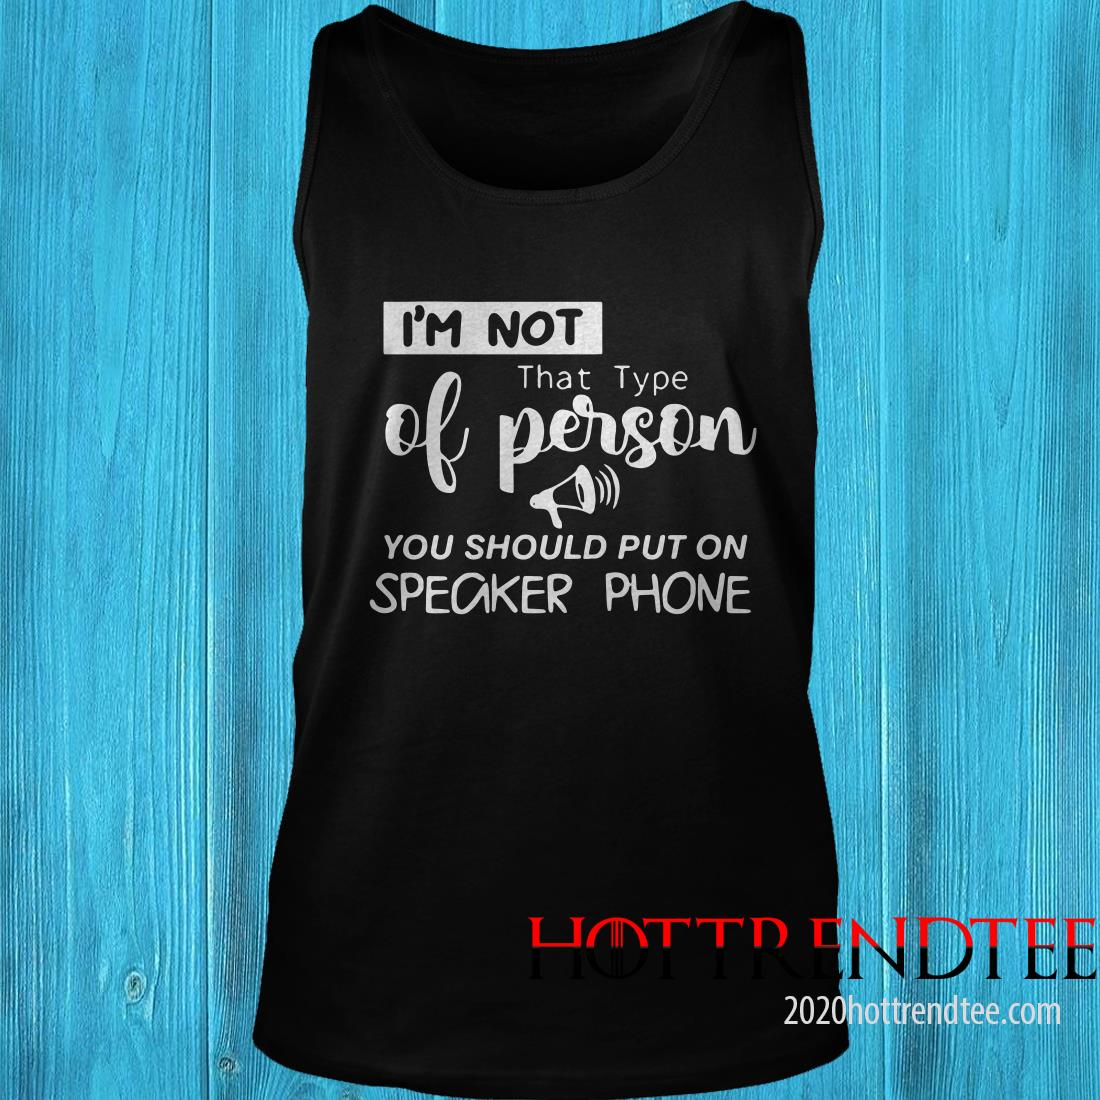 I'm Not That Type Of Person You Should Put On Speakerphone Shirt